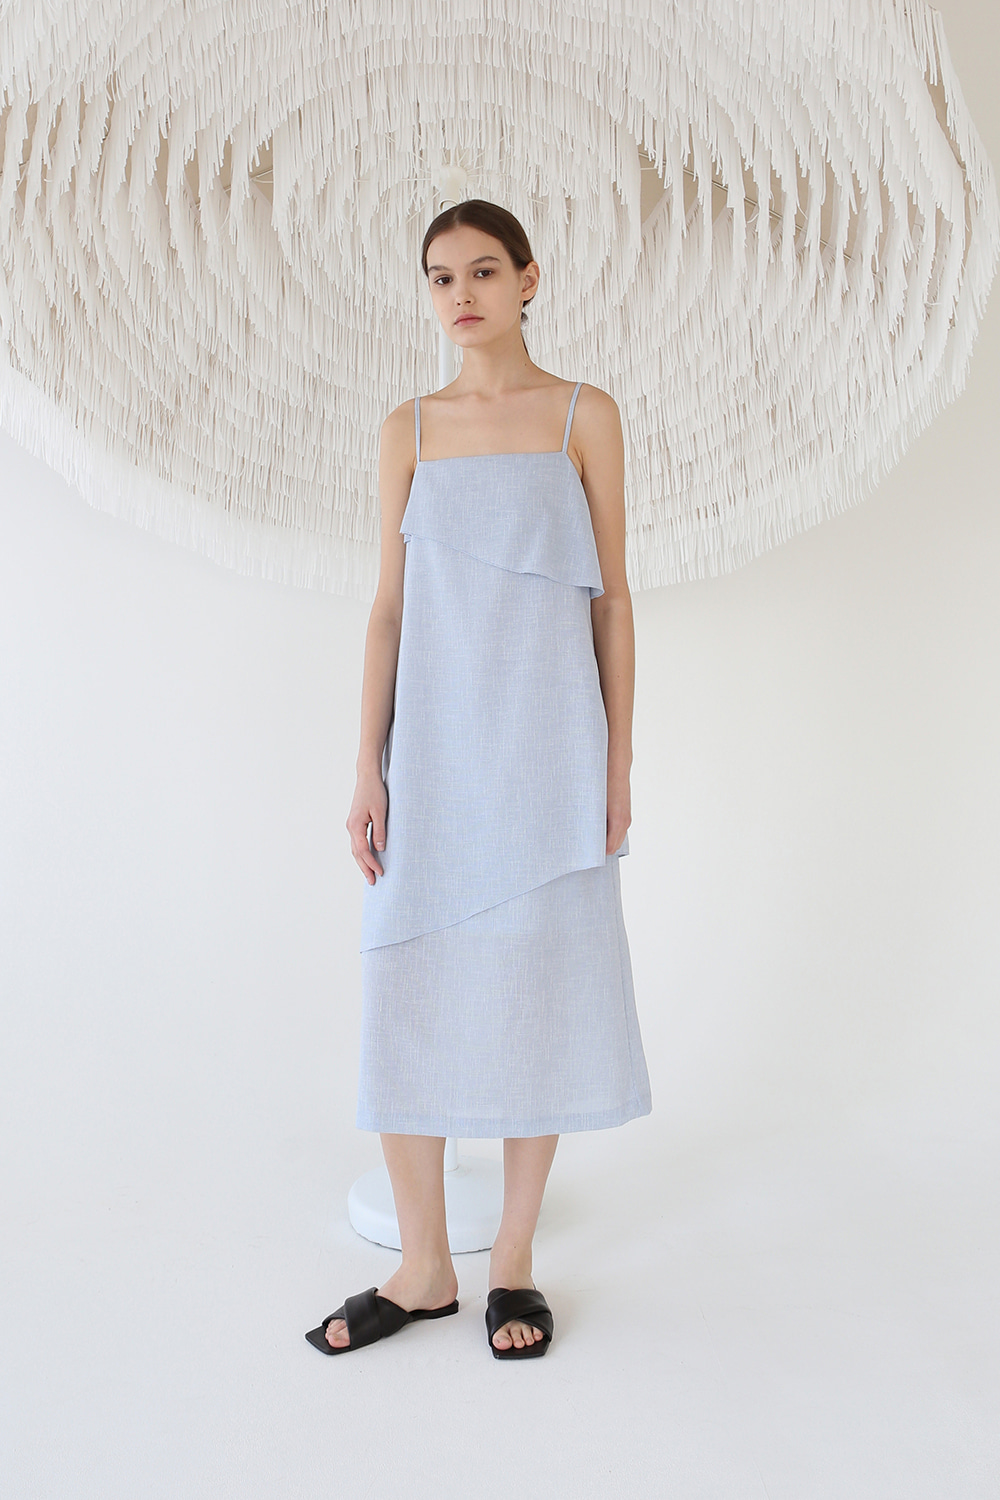 Textured Layer Strap Dress (light blue)